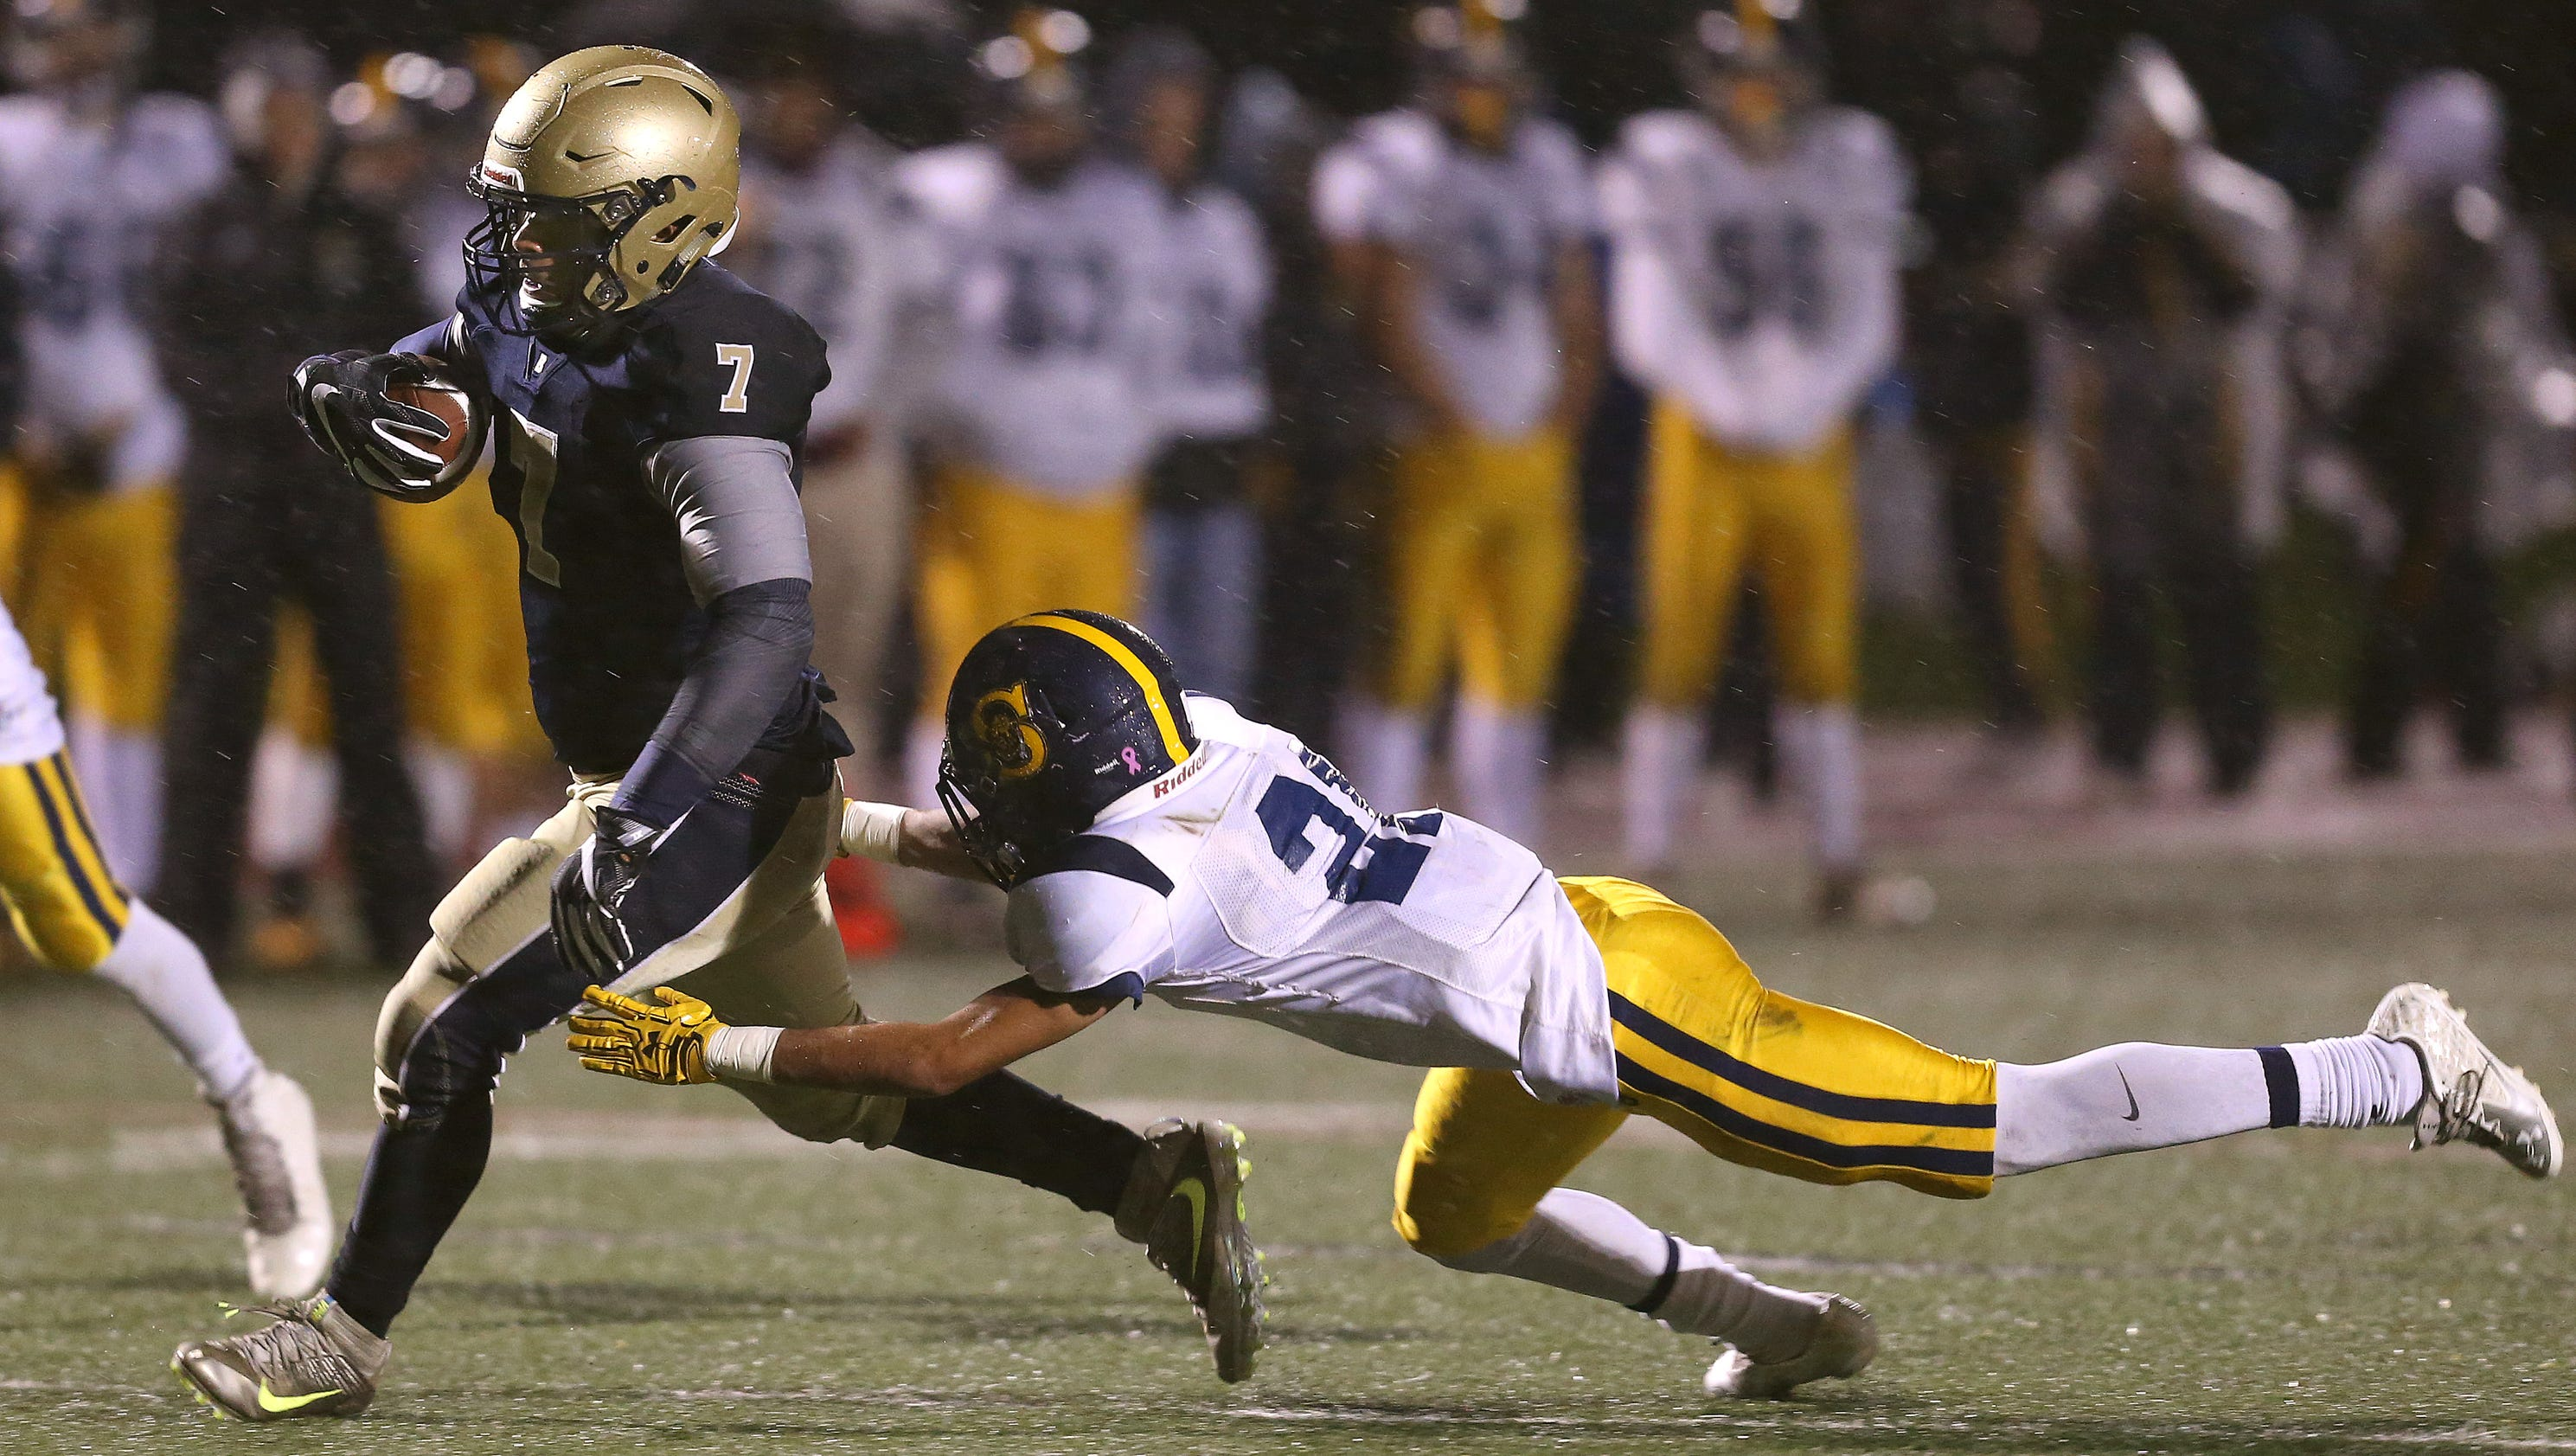 News 8 Now >> High school football results, Oct. 21